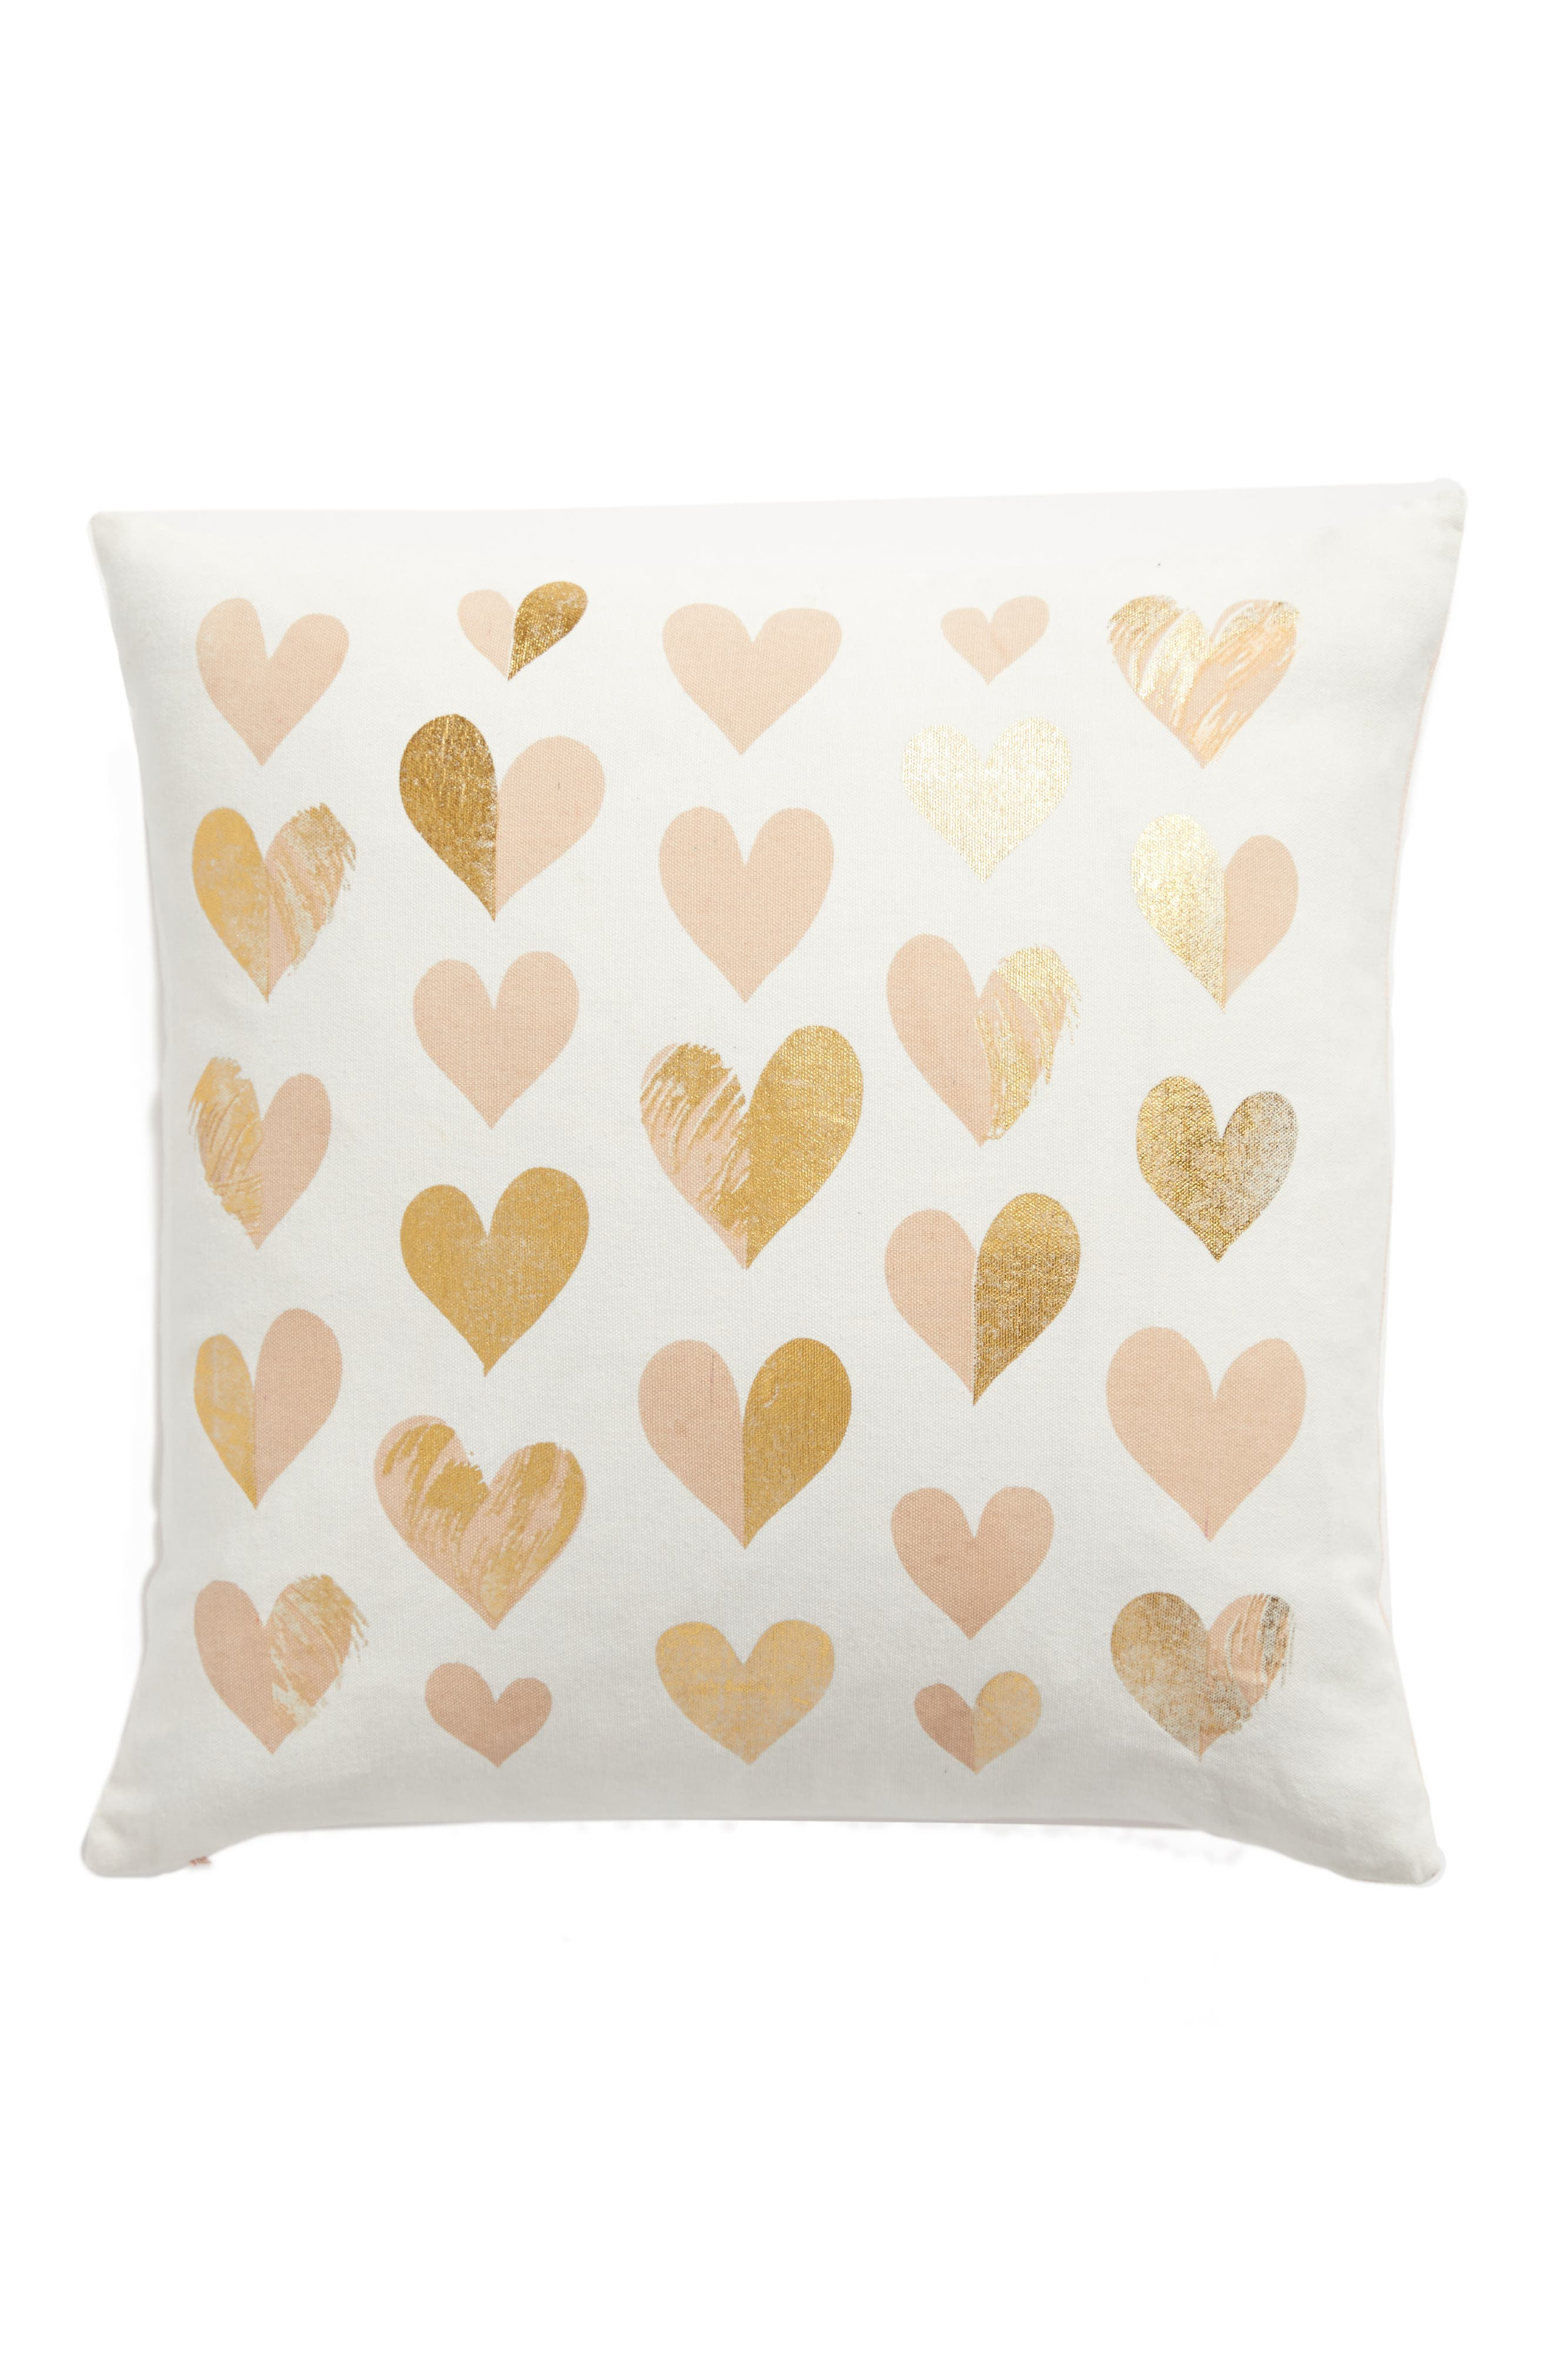 Lots of Love Accent Pillow,                         Main,                         color, 900